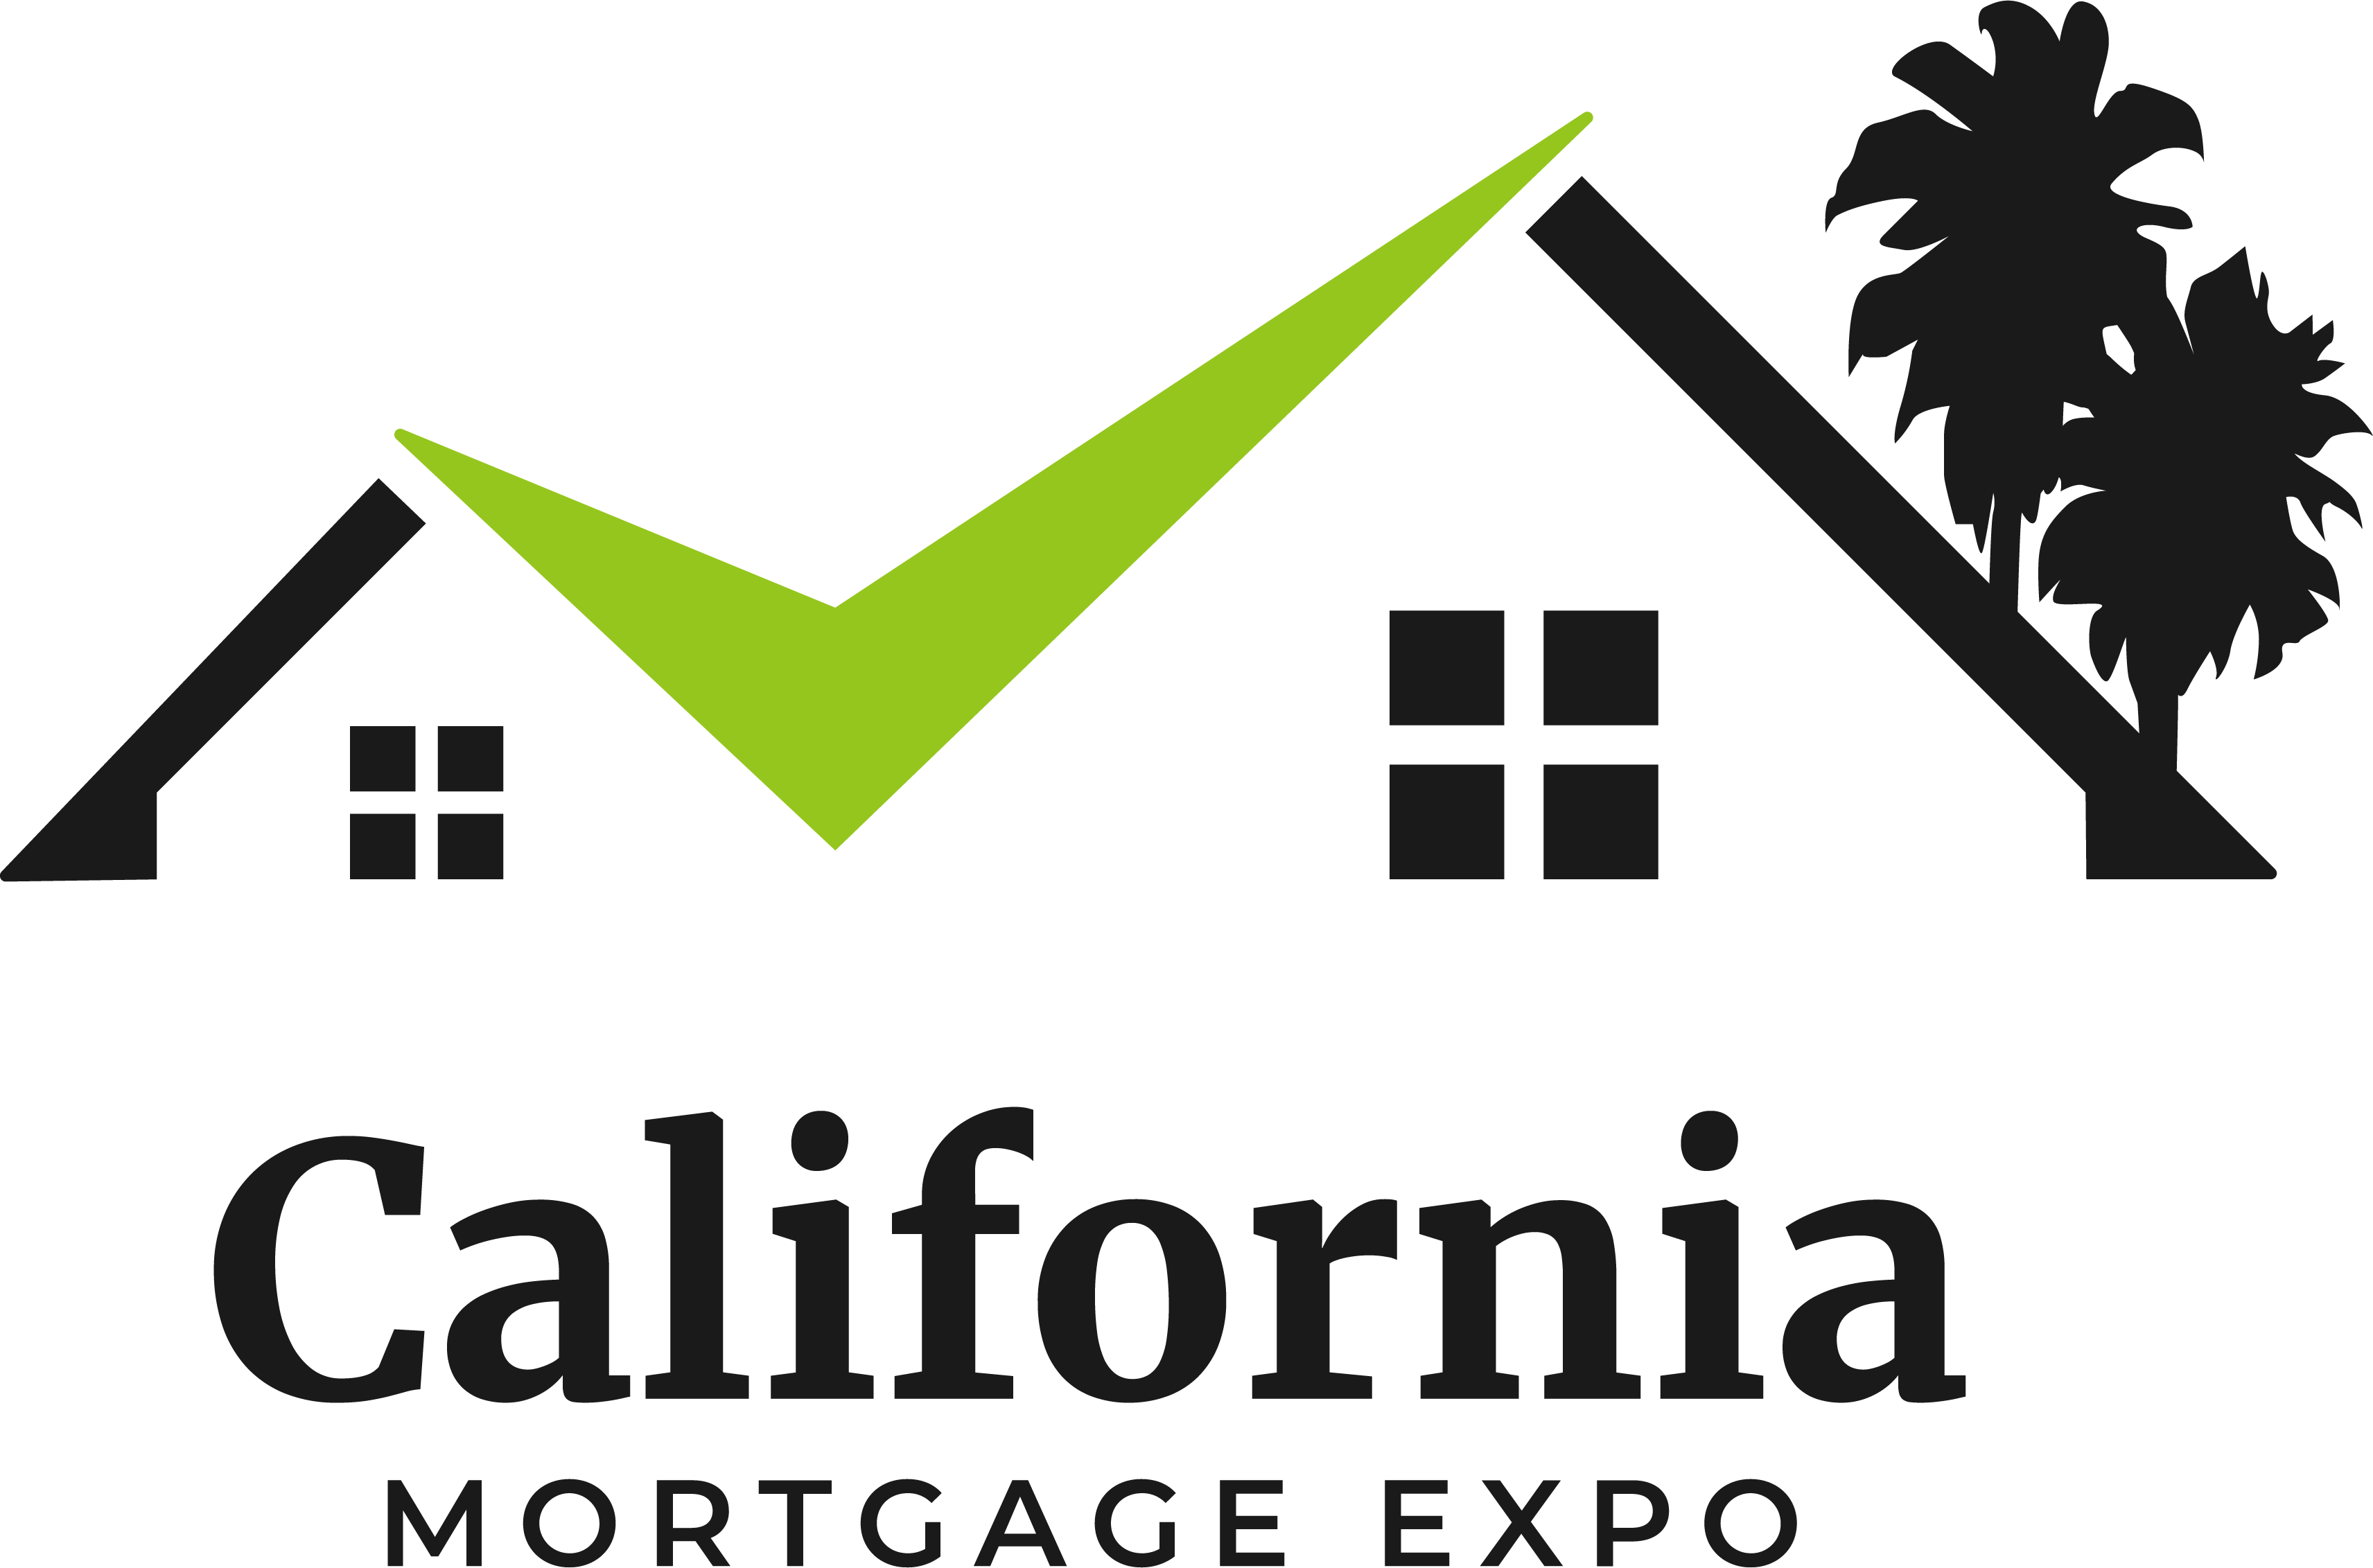 California Mortgage Expo — Irvine